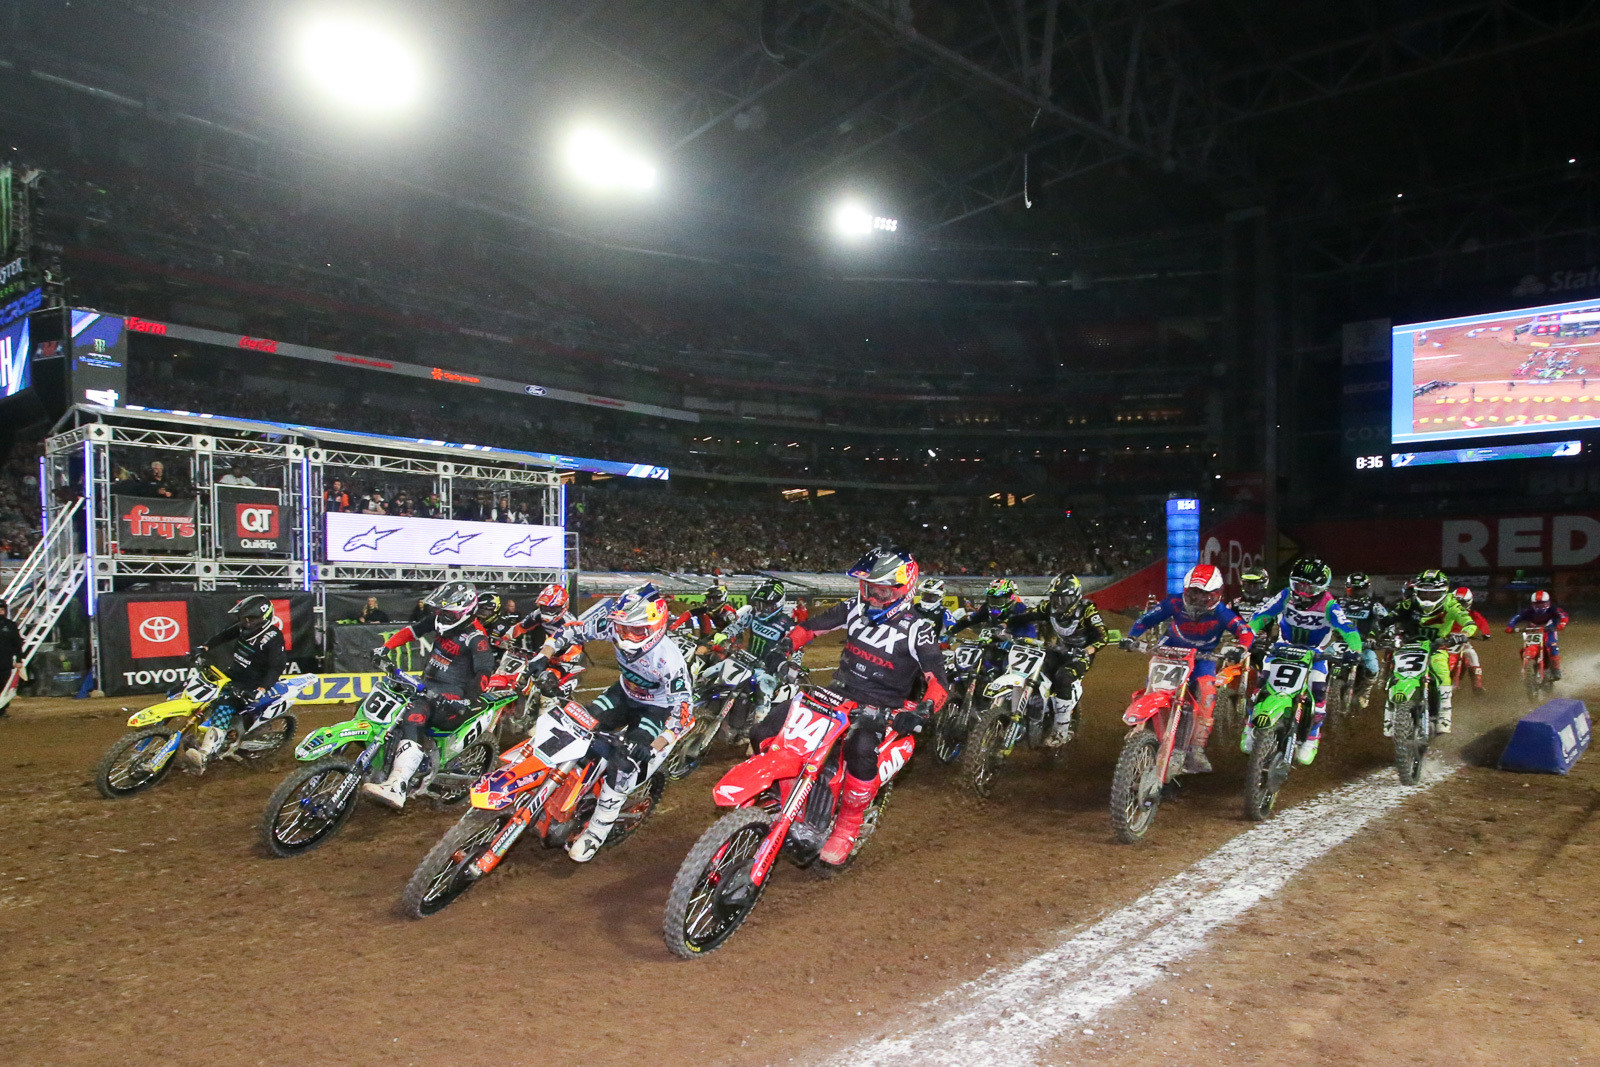 A whole healthy pack of riders head to the first turn in one of the Triple Crown main events in Glendale.